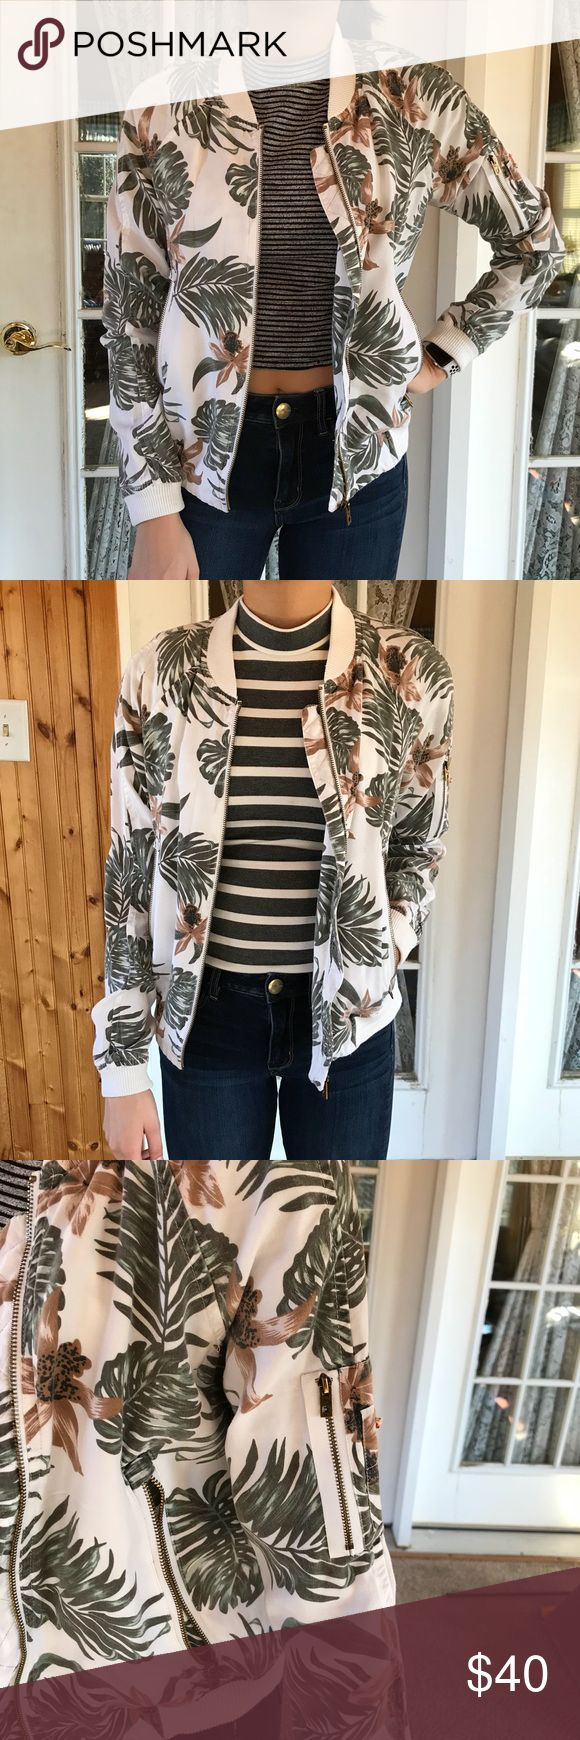 Superdry Floral Bomber Jacket Comfortable, lightweight bomber jacket. Great for layering. Both shirts styled in the photos are also on sale separately! Superdry Jackets & Coats